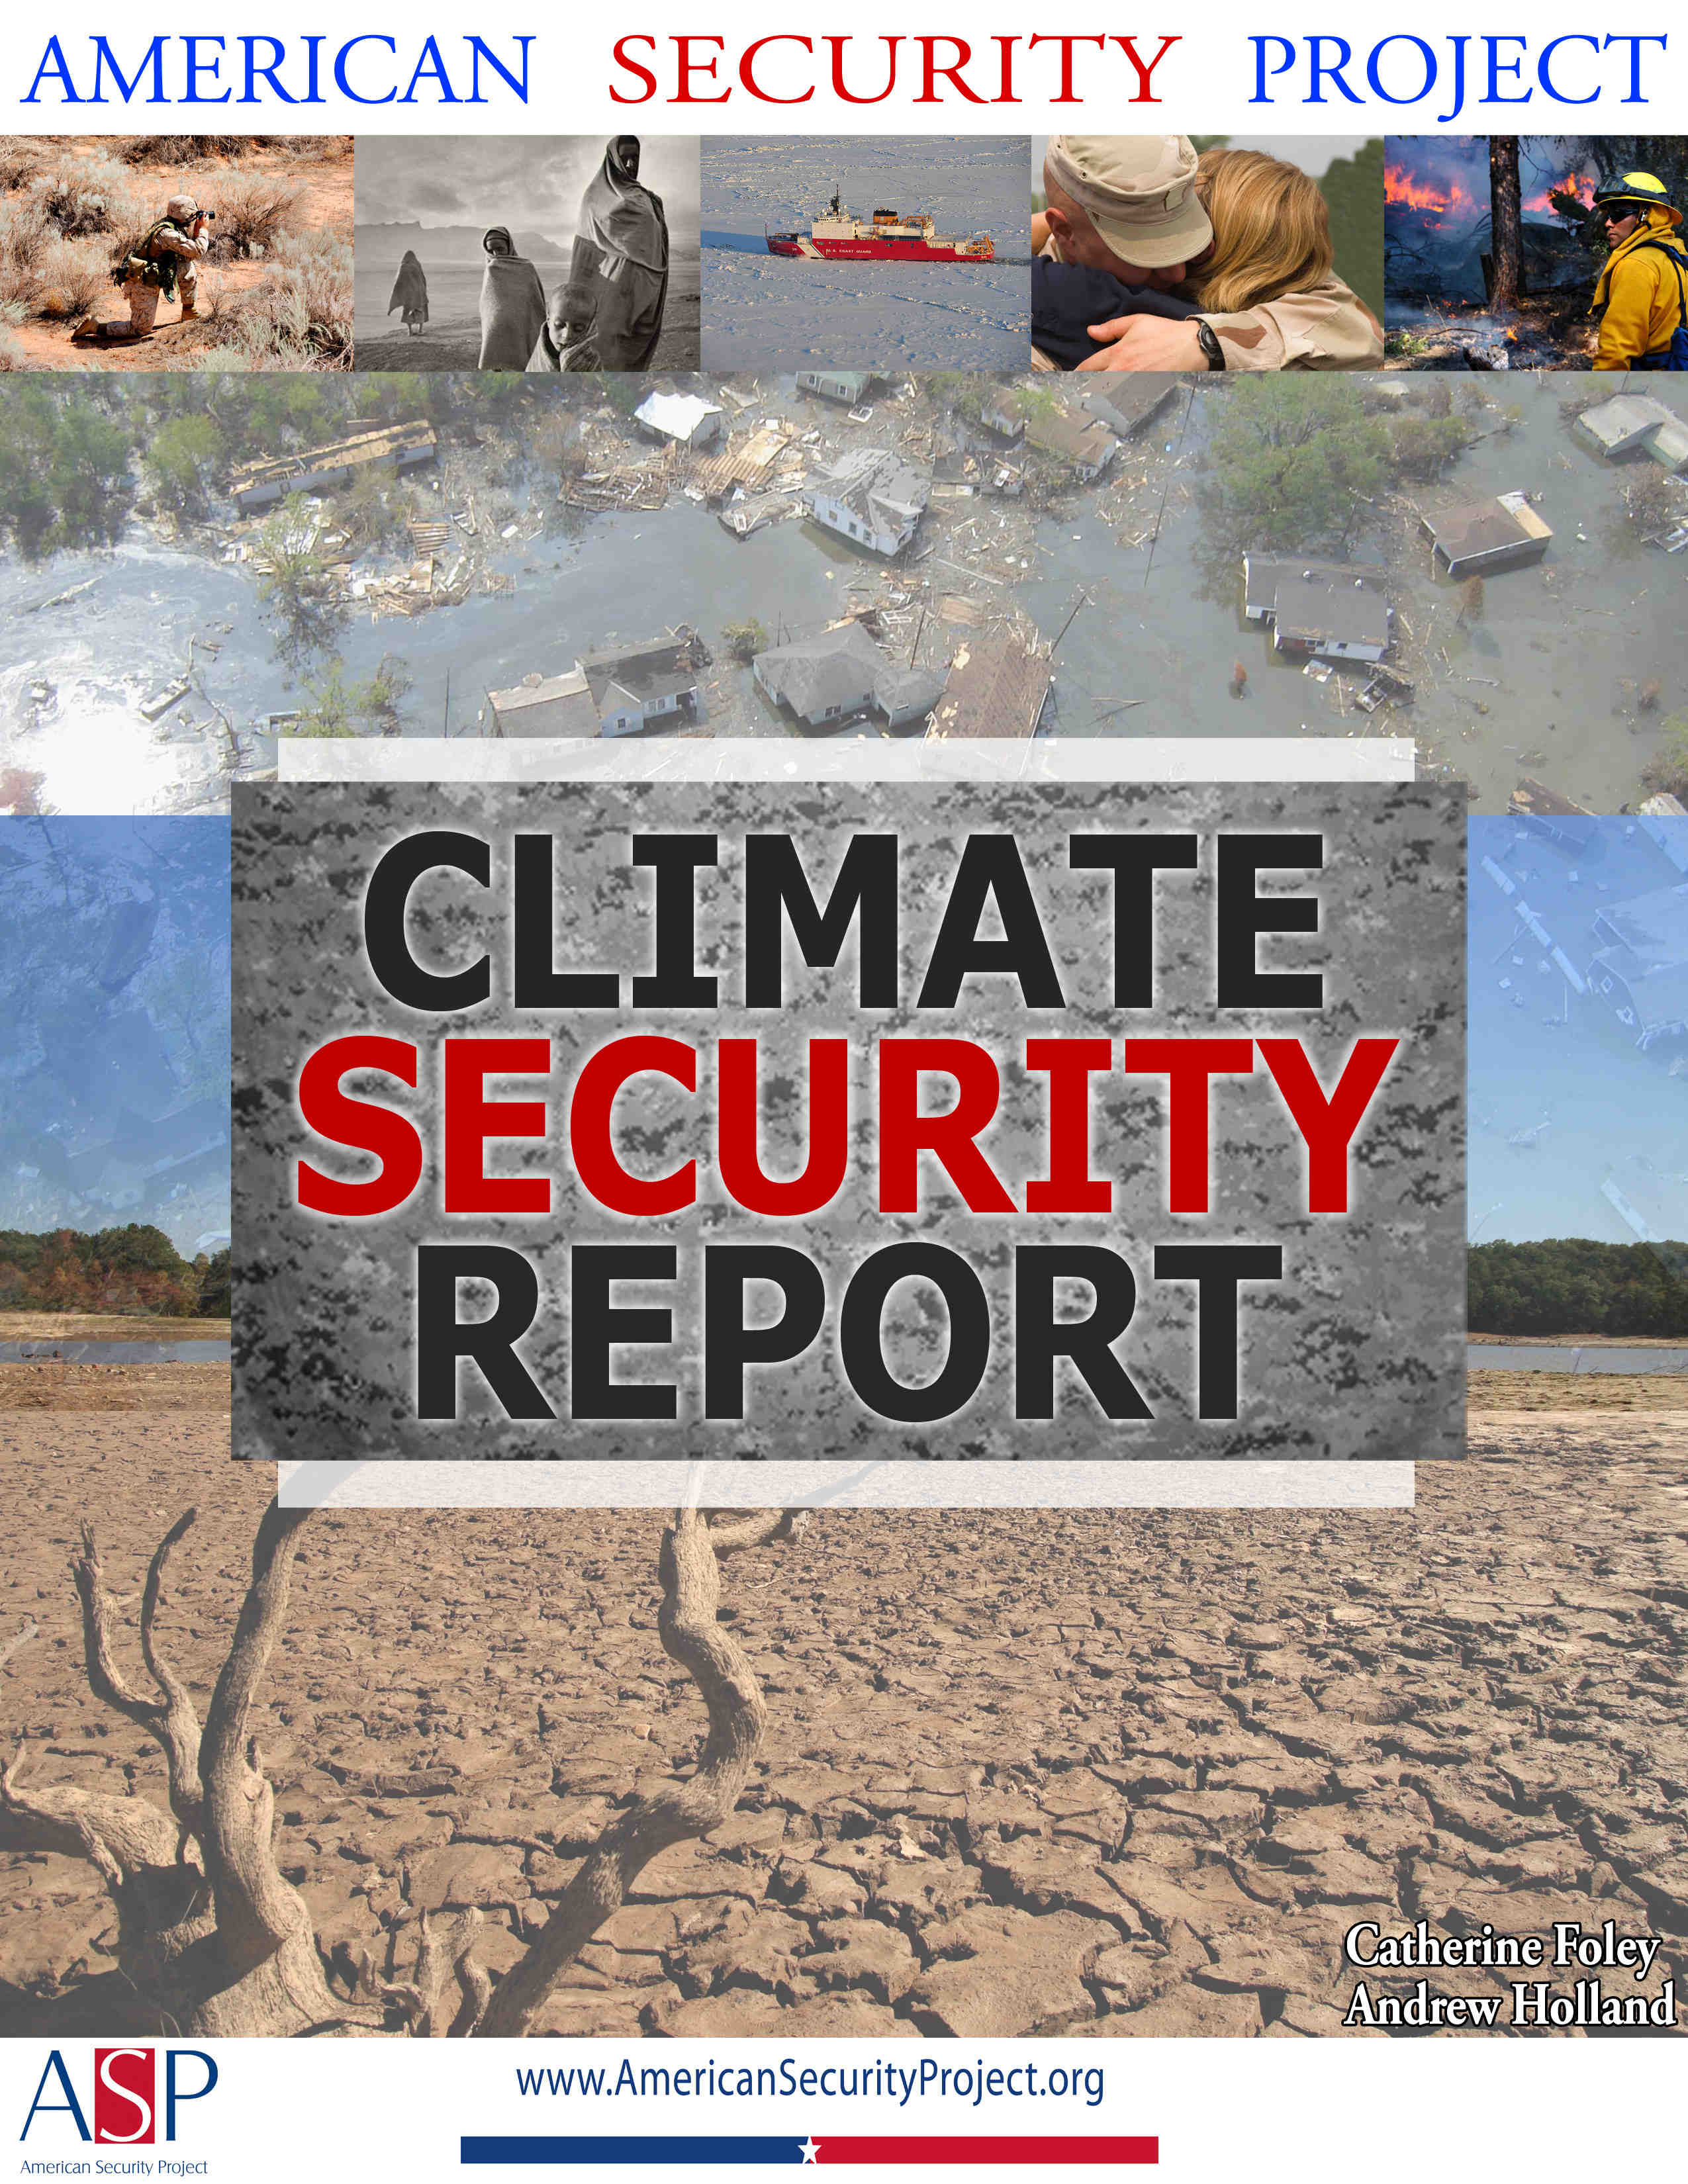 climate security report 2012_Foley_Holland-rr